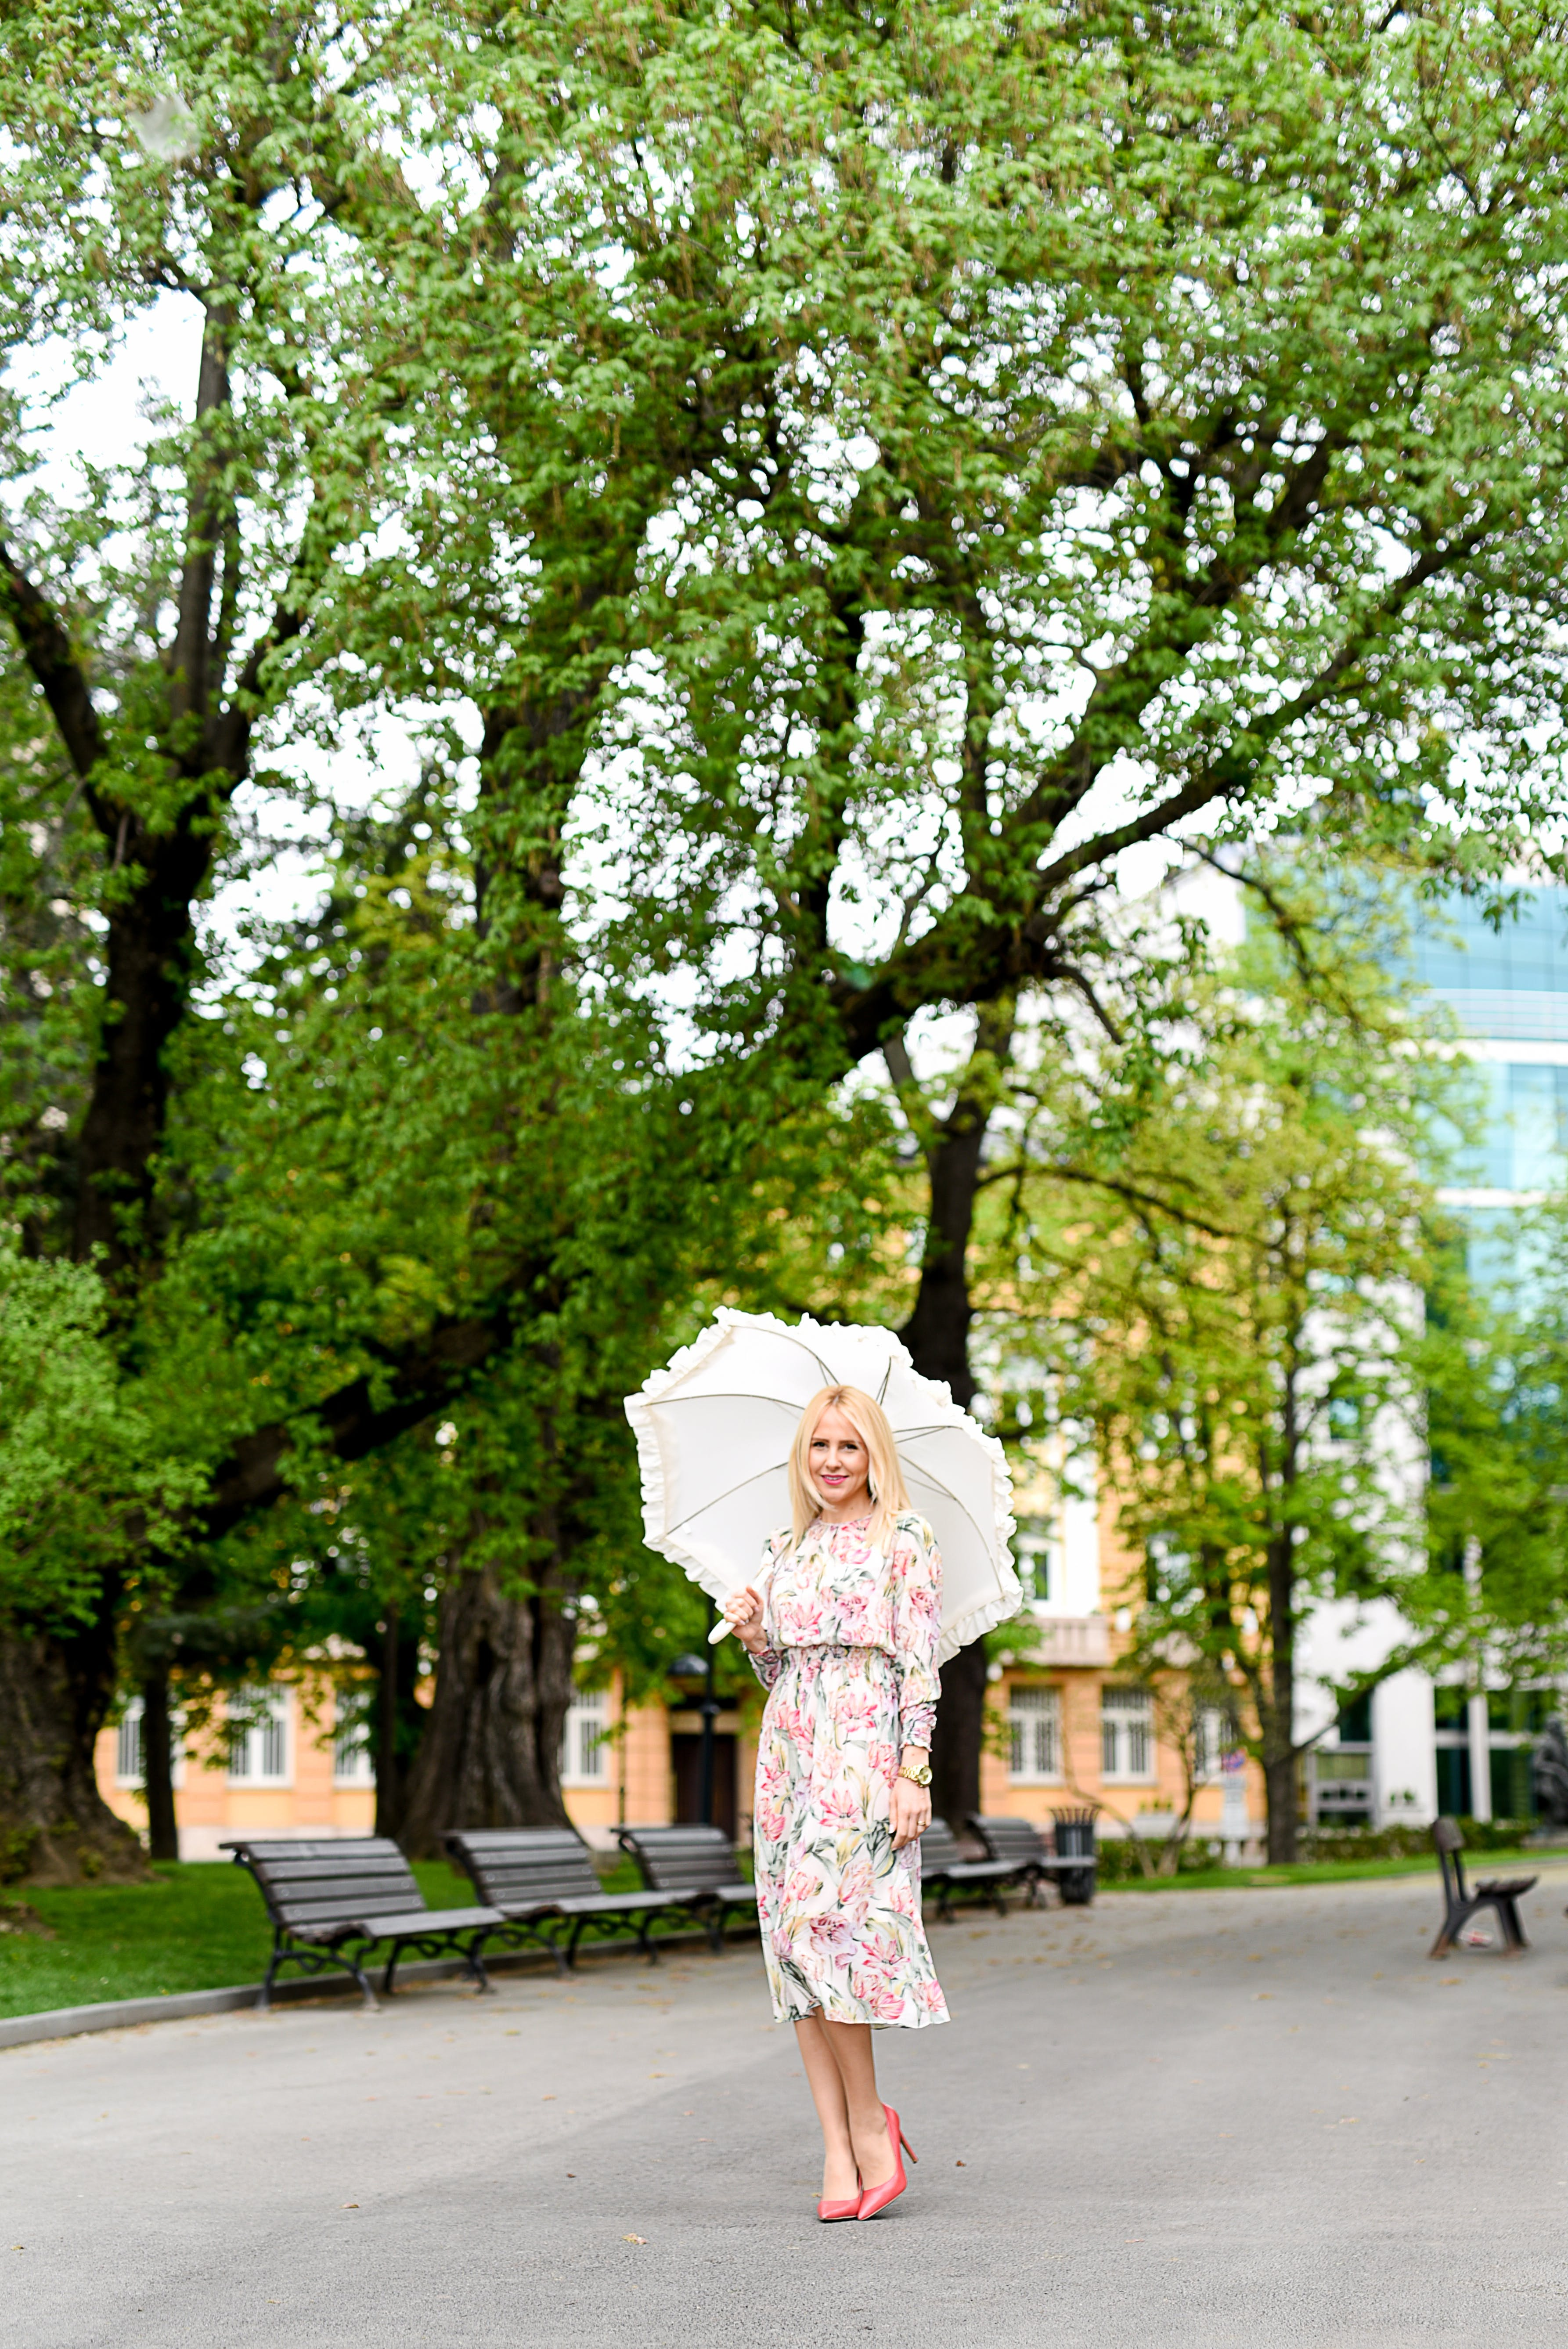 Woman in White Green and Red Floral Holding White Umbrella on Gray Concrete Pathway Near Brown Wooden Bench Near Trees during Daytime